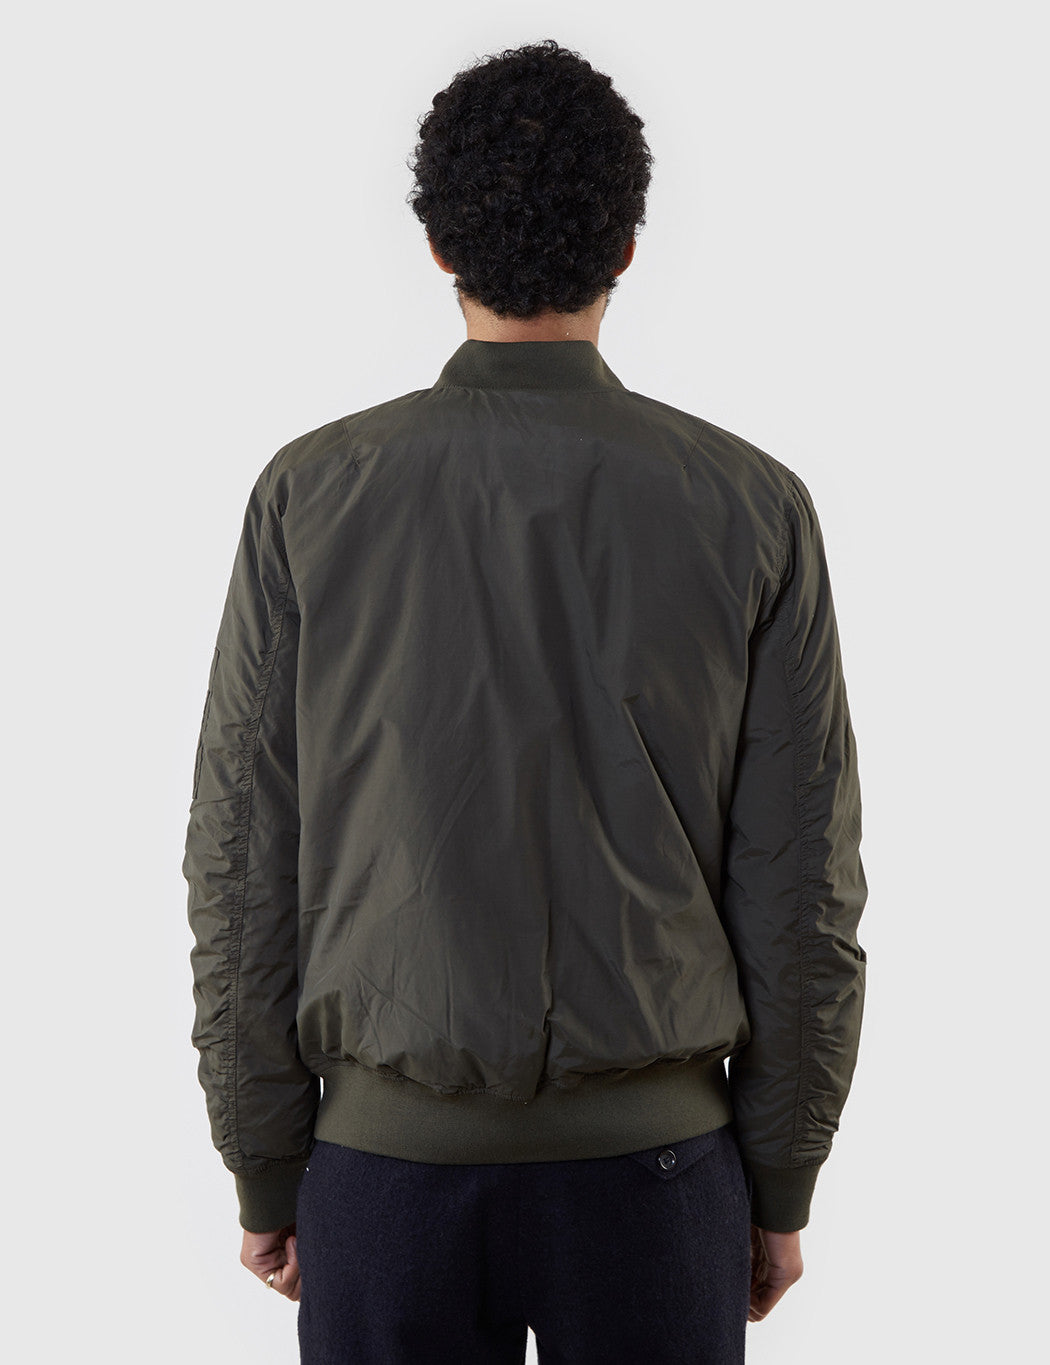 Edwin Flight Bomber Jacket - Uniform Green